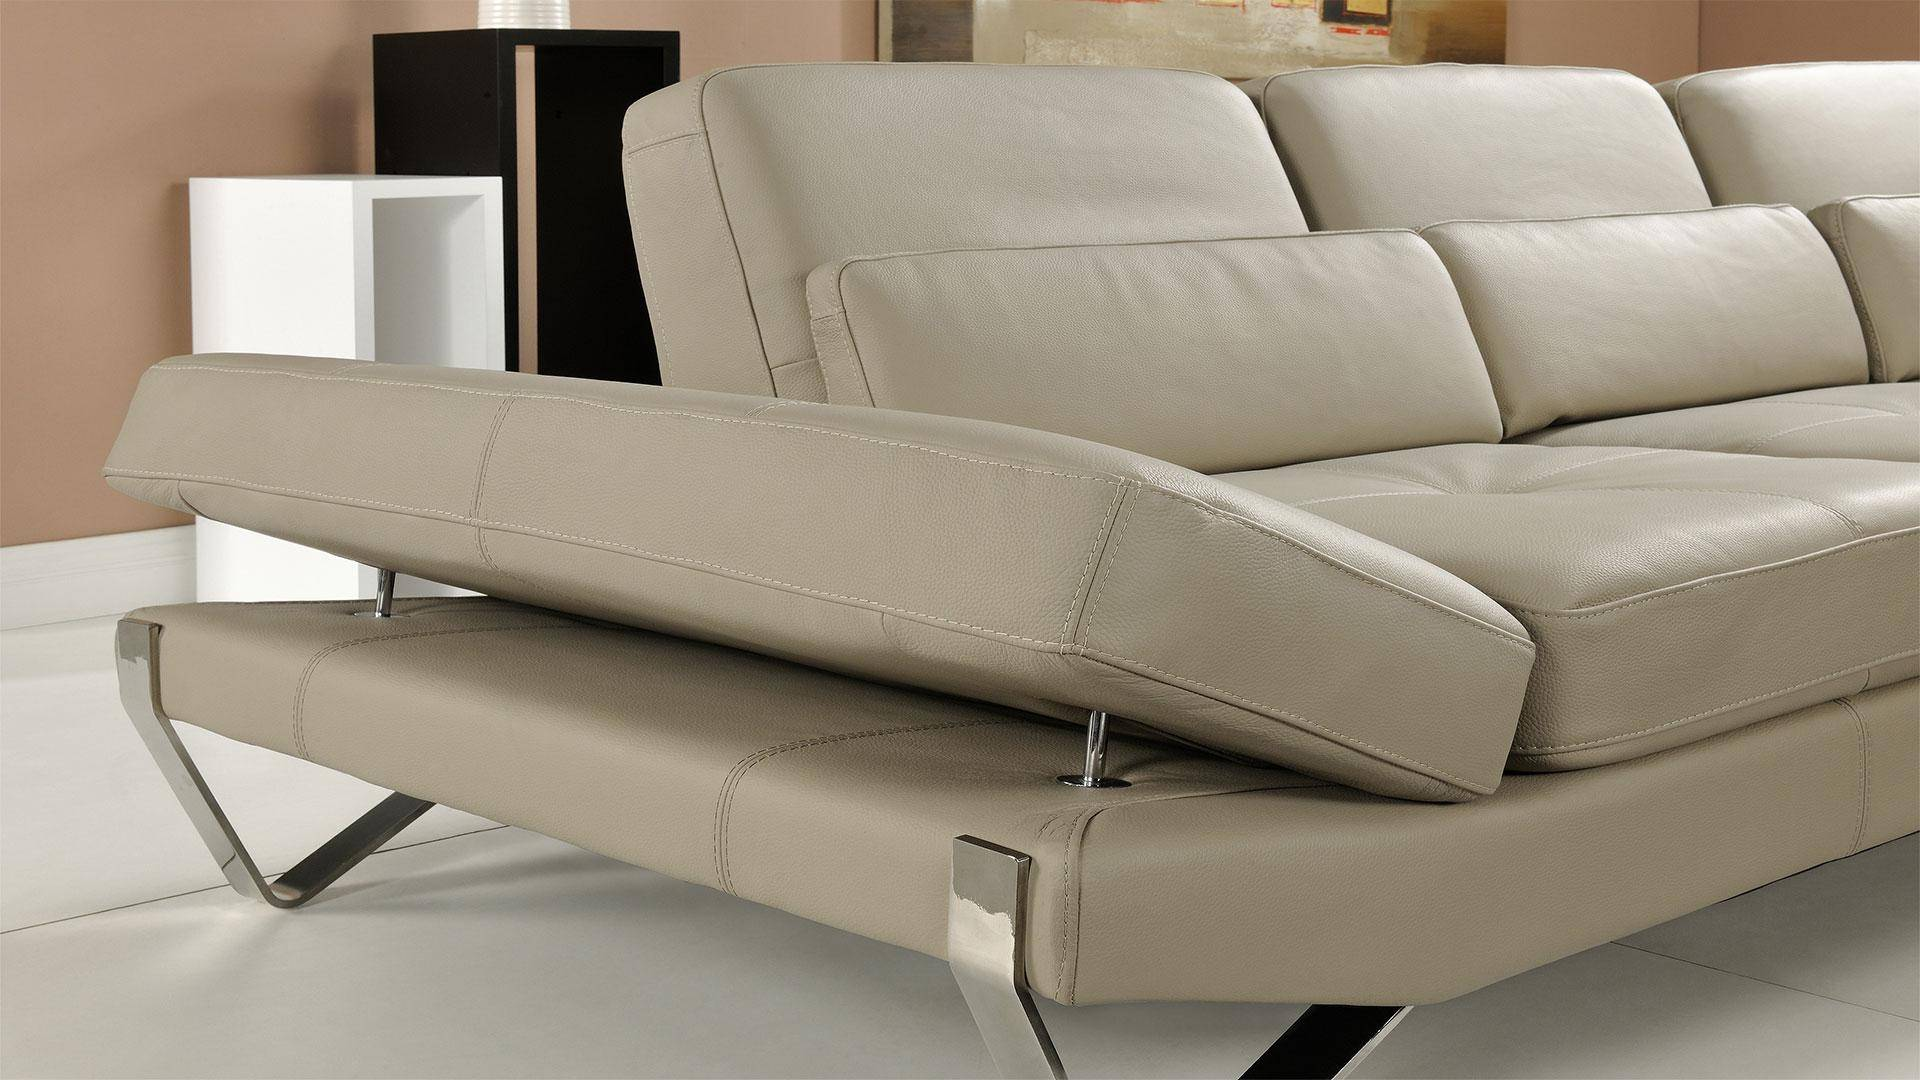 At Home Usa Bianca Beige Sectional Couch Italian Leather